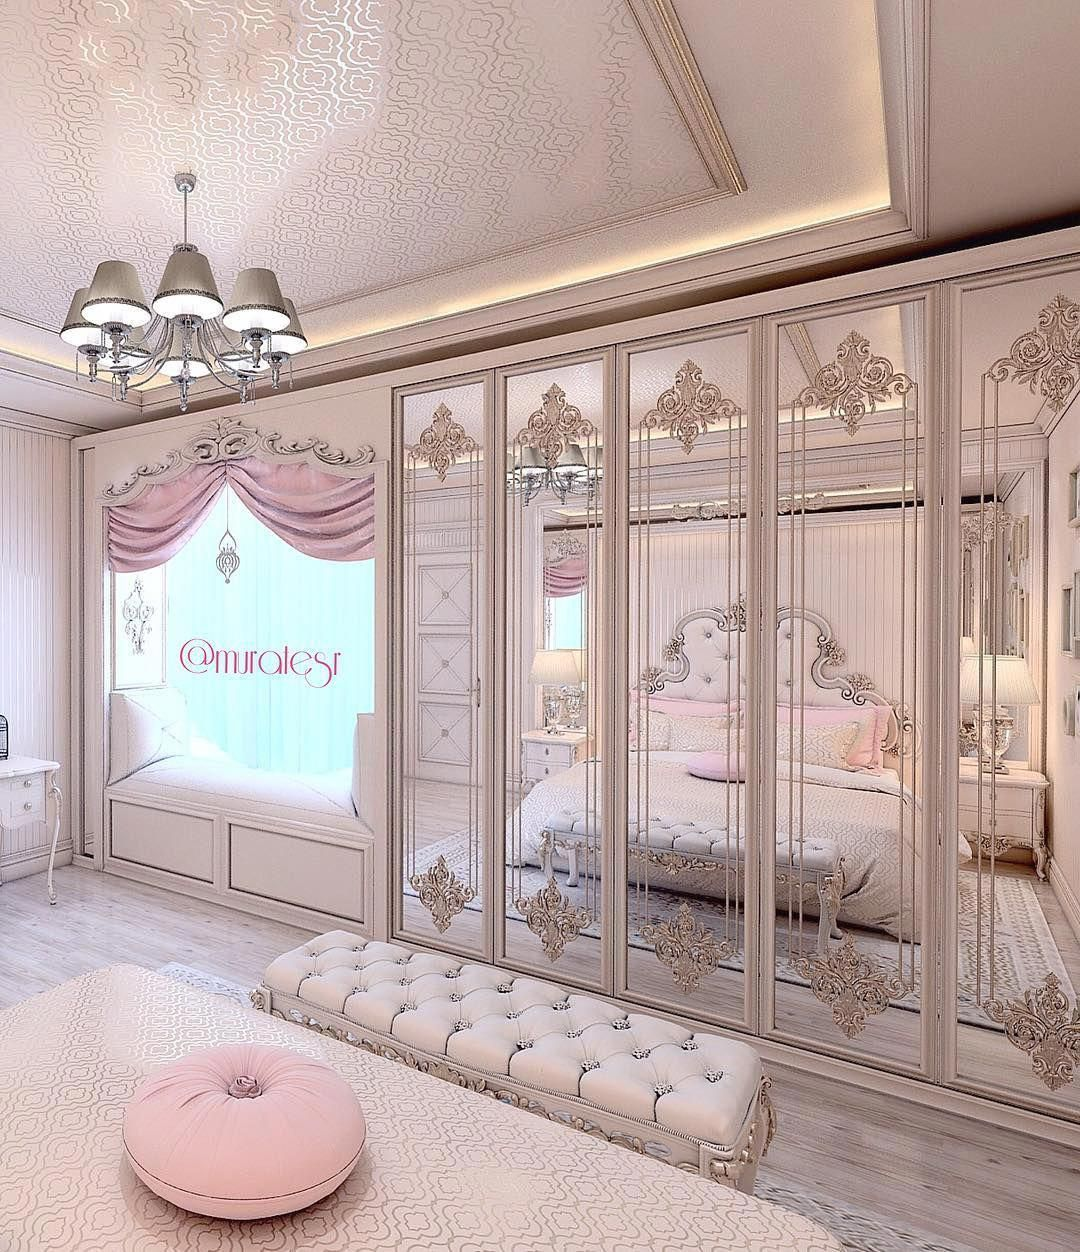 Luxury Princess Bedroom Go To Circu Net And Find The Most Amazing Princess Themed Furniture For Girl Bedroom Designs Luxury Bedroom Design Luxurious Bedrooms